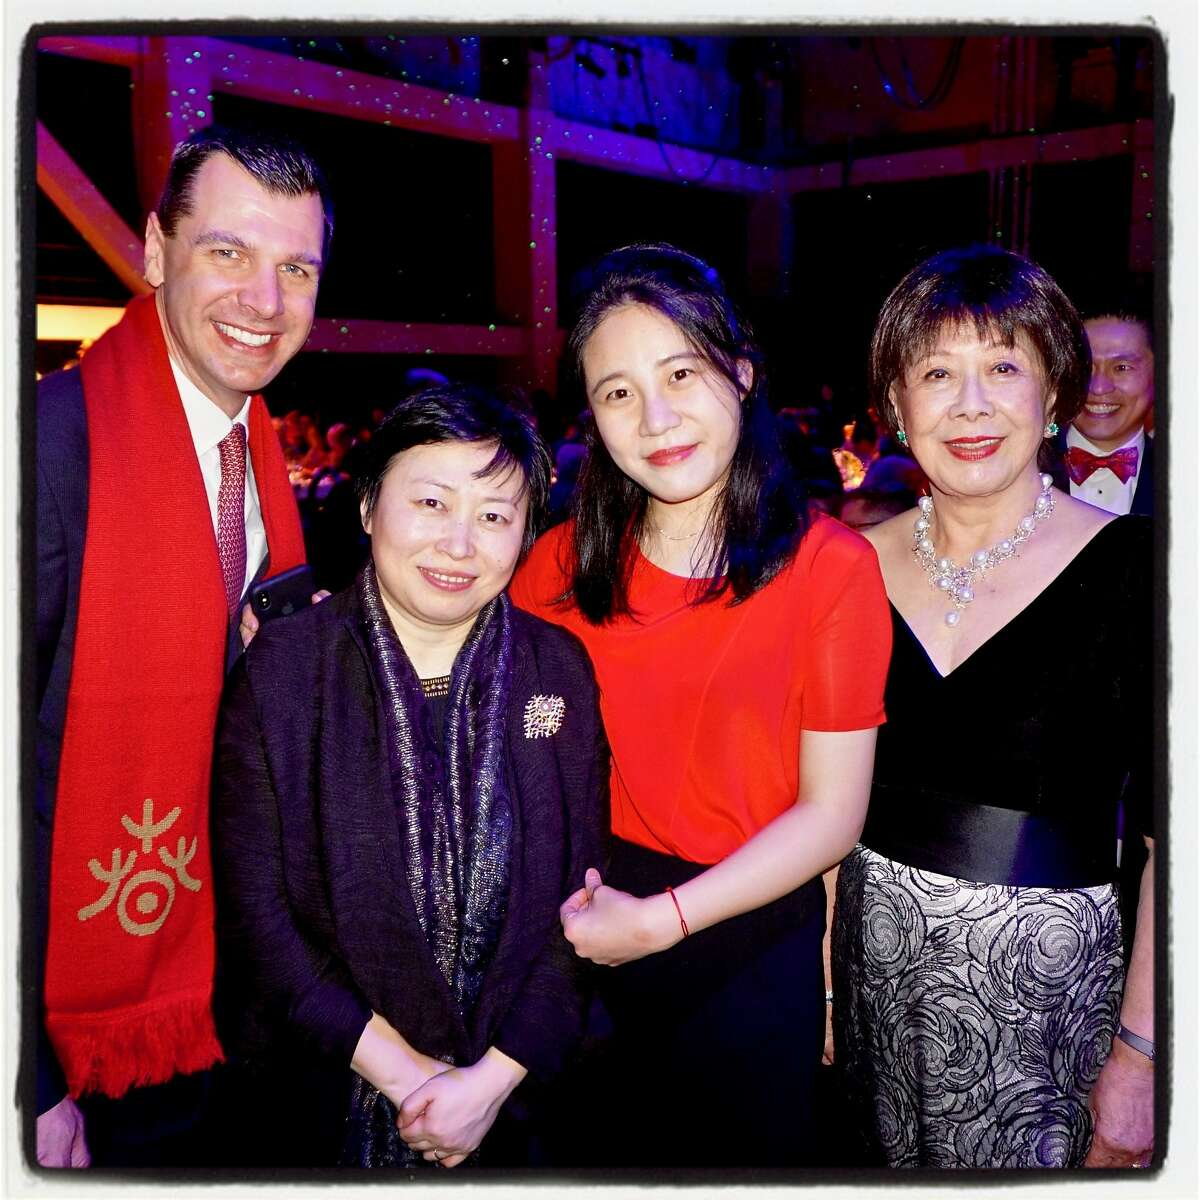 SFS Executive Director Mark Hanson (left) with conductor Xian Zhang, pianist Zhang Zuo and SFS trustee Margaret Lui Collins at Sound Box. Feb. 24, 2018.